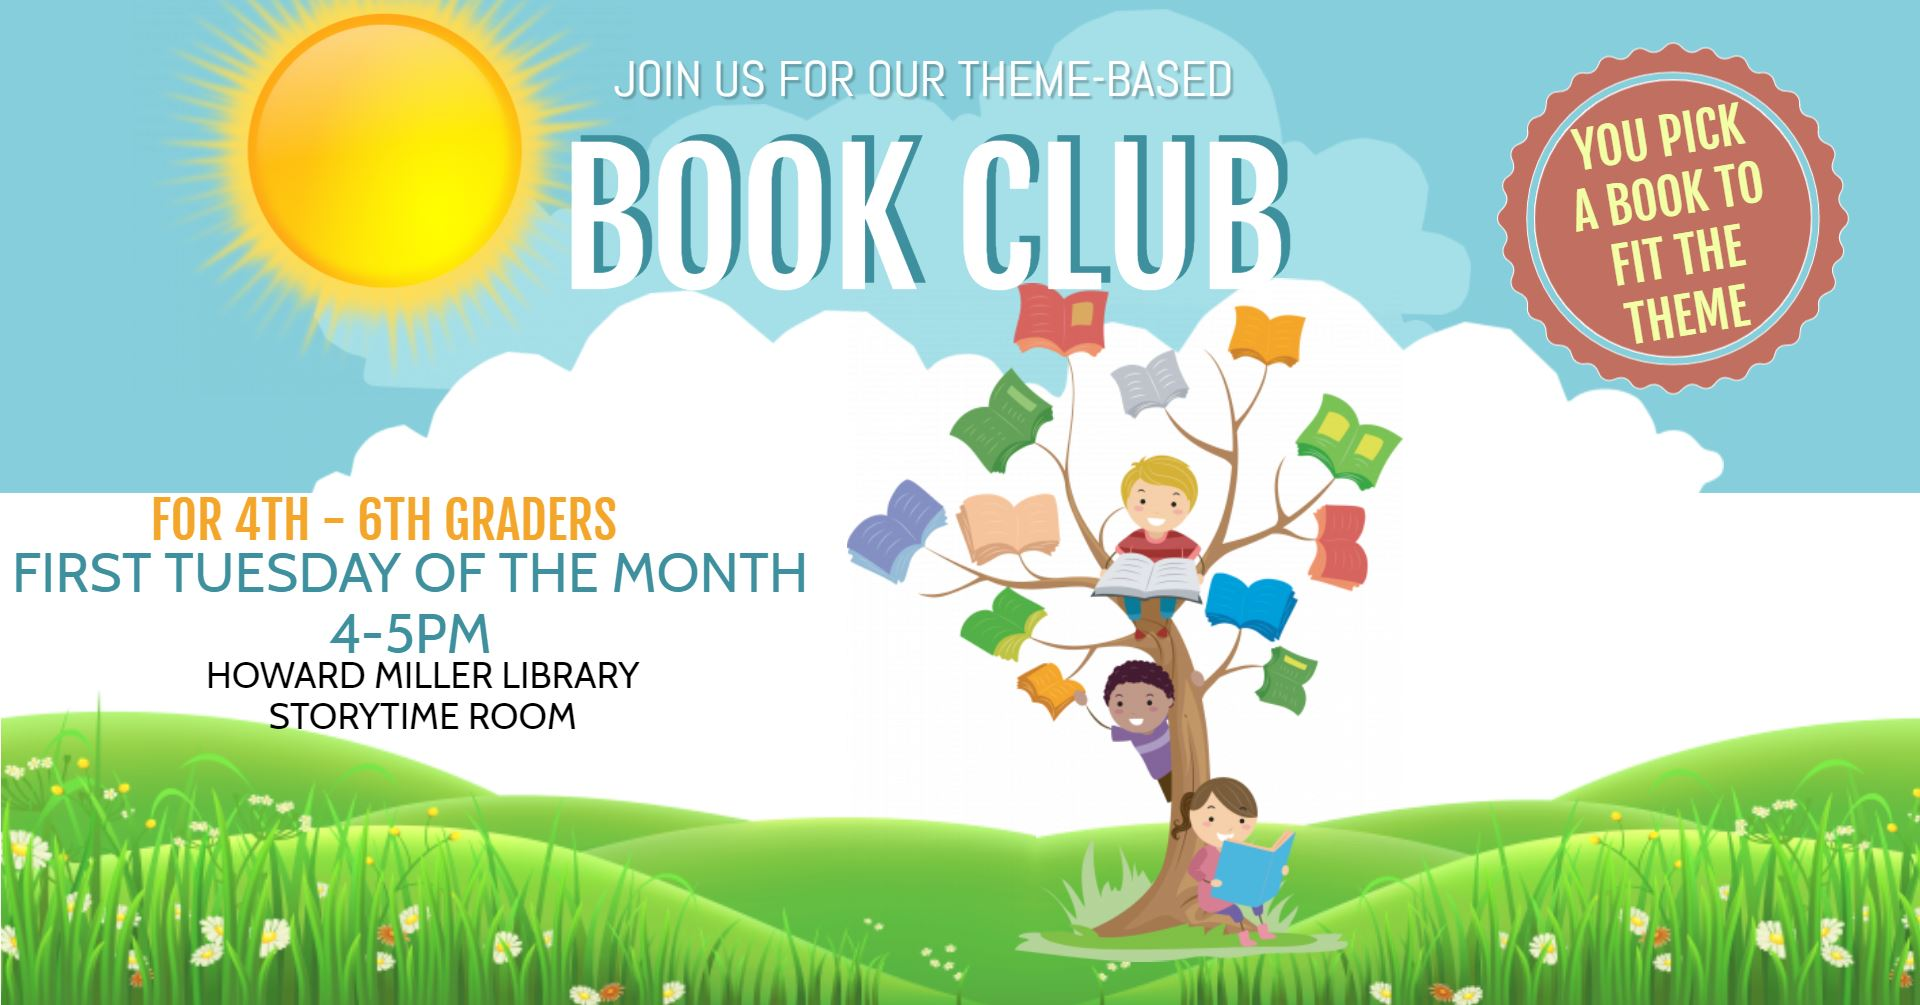 For 4th-6th graders. The library hosts a theme based book club at 4 PM on the first Tuesday of the m